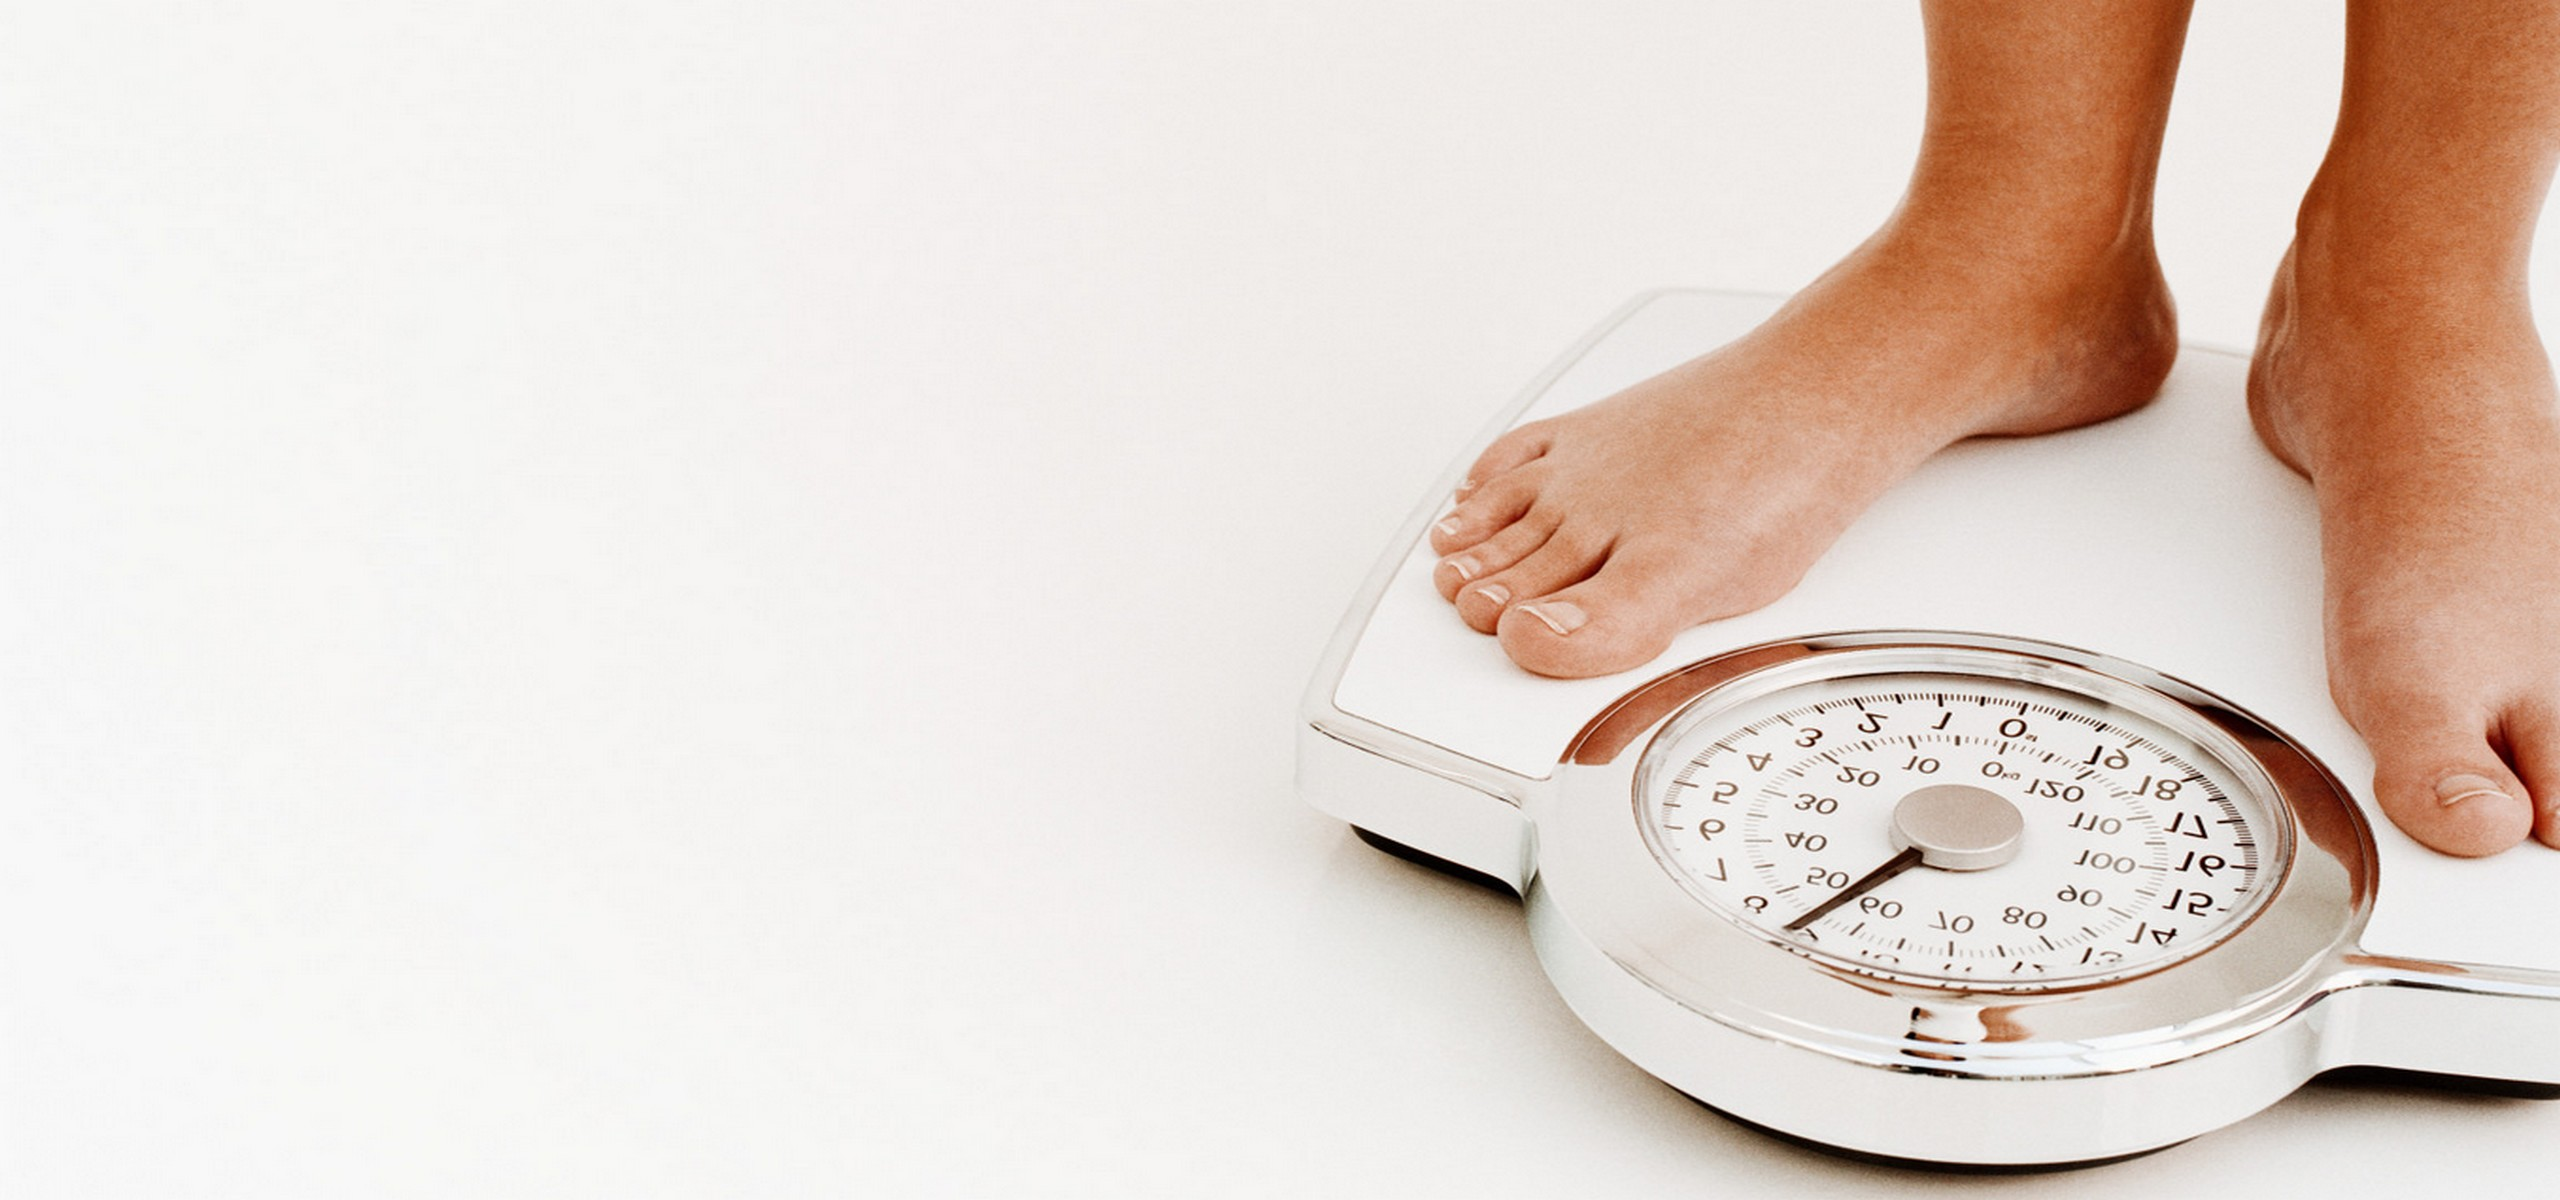 Tunisia Bariatric Surgery Rate And Affordable Price Clinic Cost